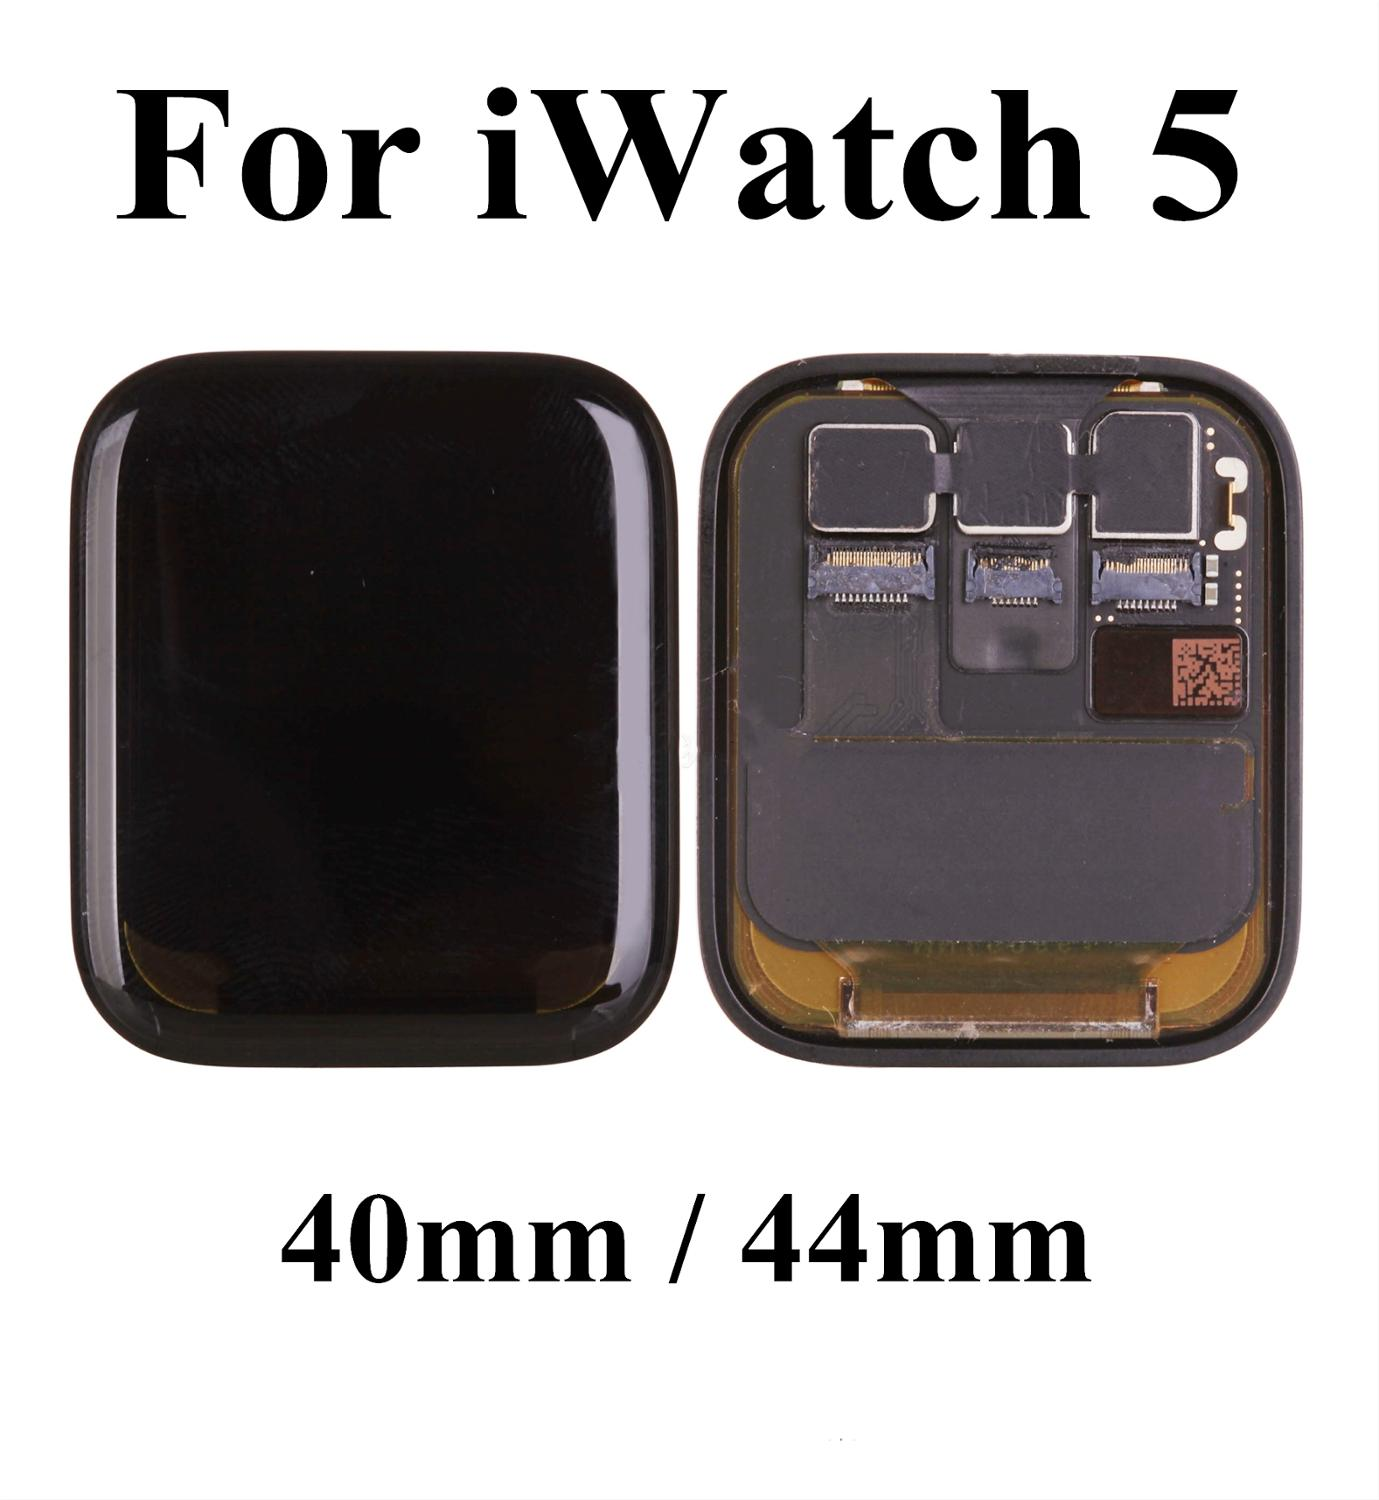 For Apple Watch 5 Series 5 LCD Sinbeda Original LTE / GPS Display Digitizer Assembly For iwatch 5 Series5 S5 40mm 44mm LCD image